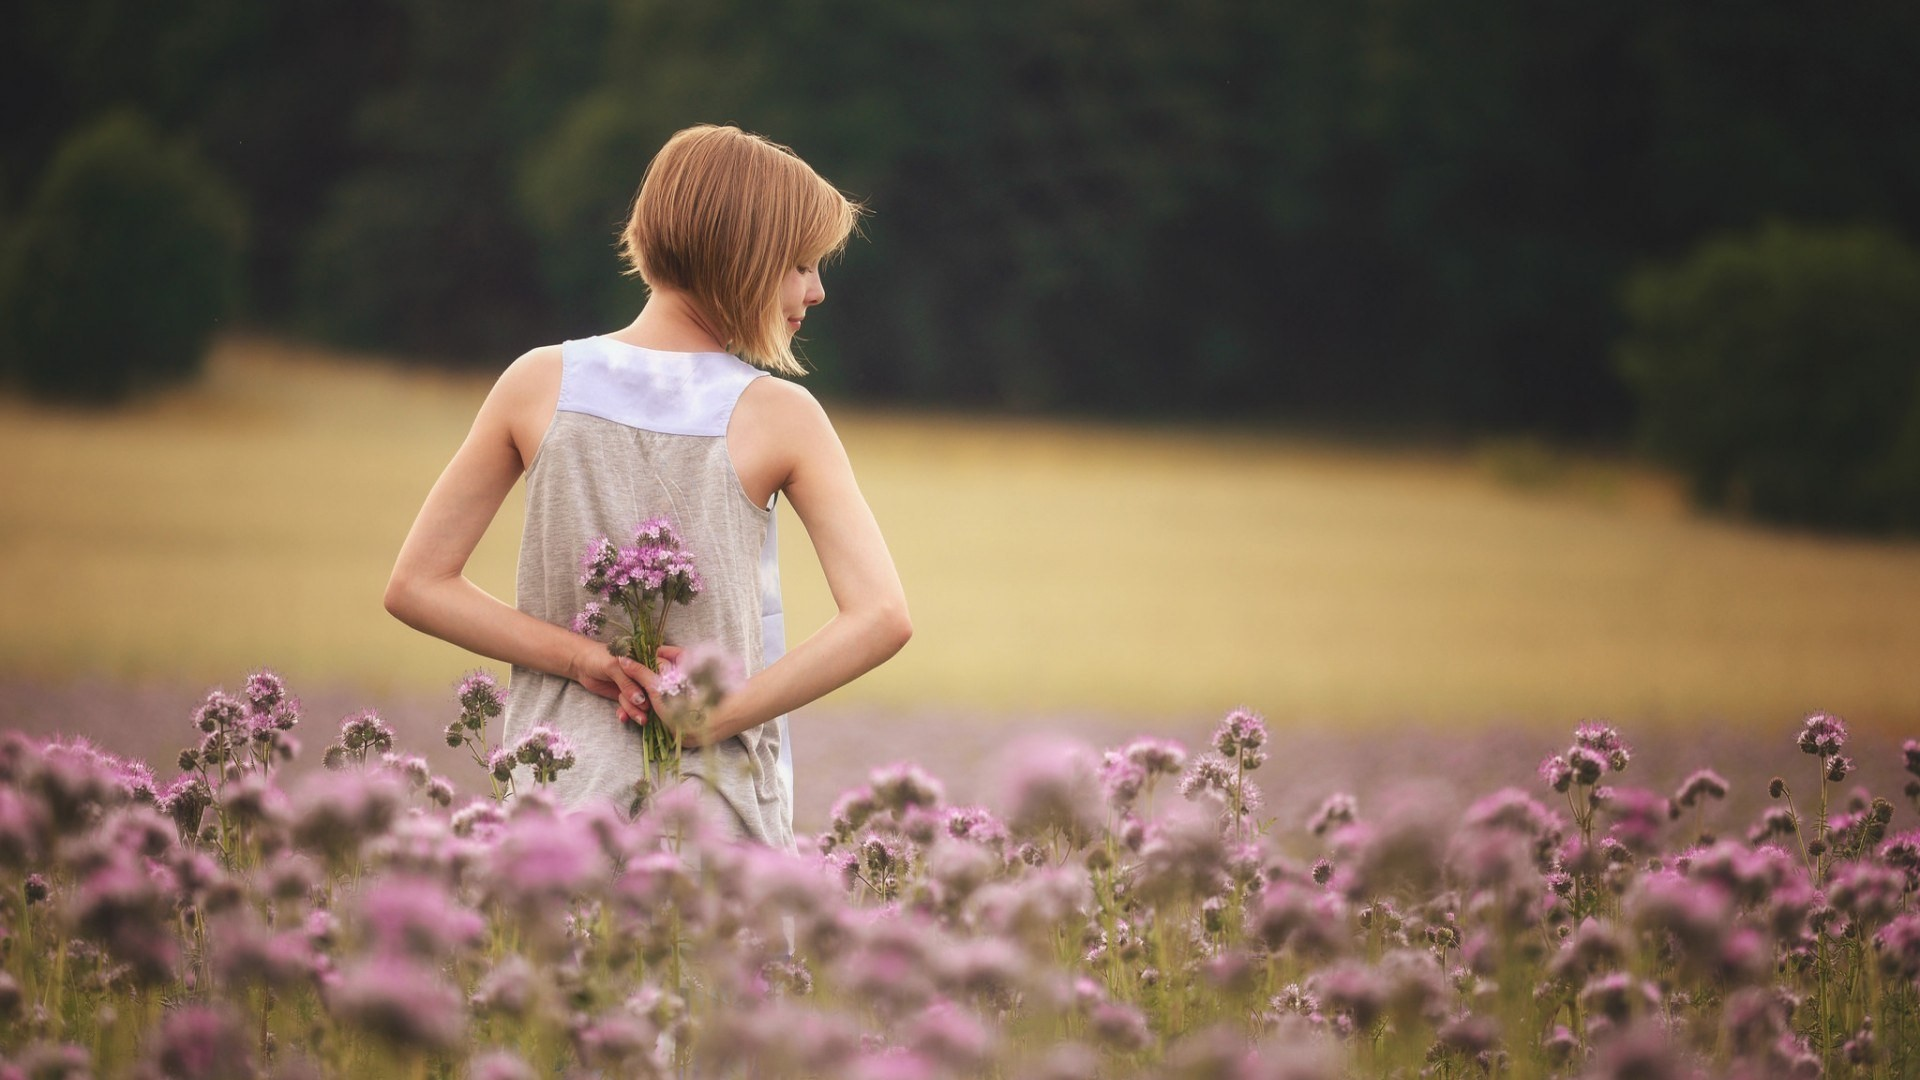 girl with flowers standing in field, hd girls, 4k wallpapers, images